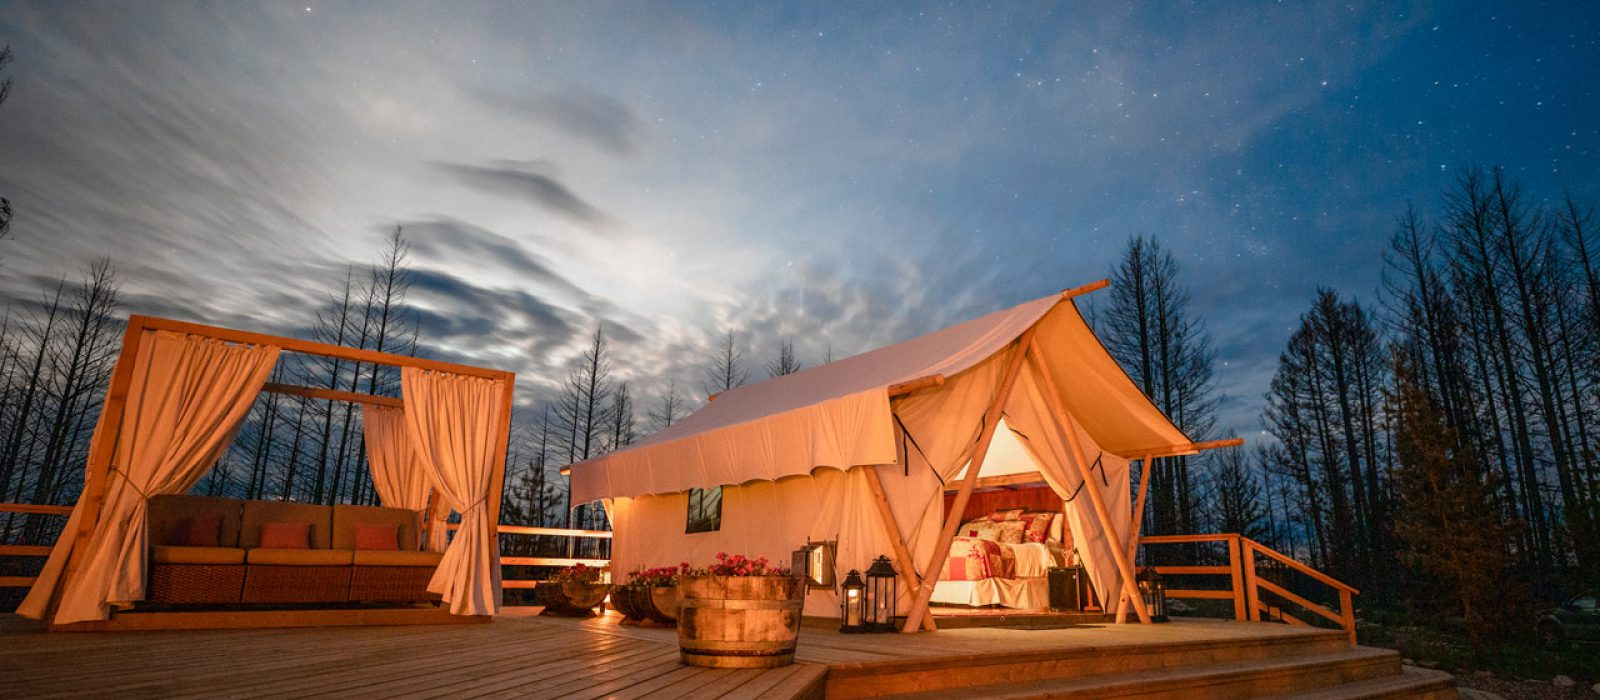 Outdoor glamping tent at night at the Siwash Lake Wilderness Resort